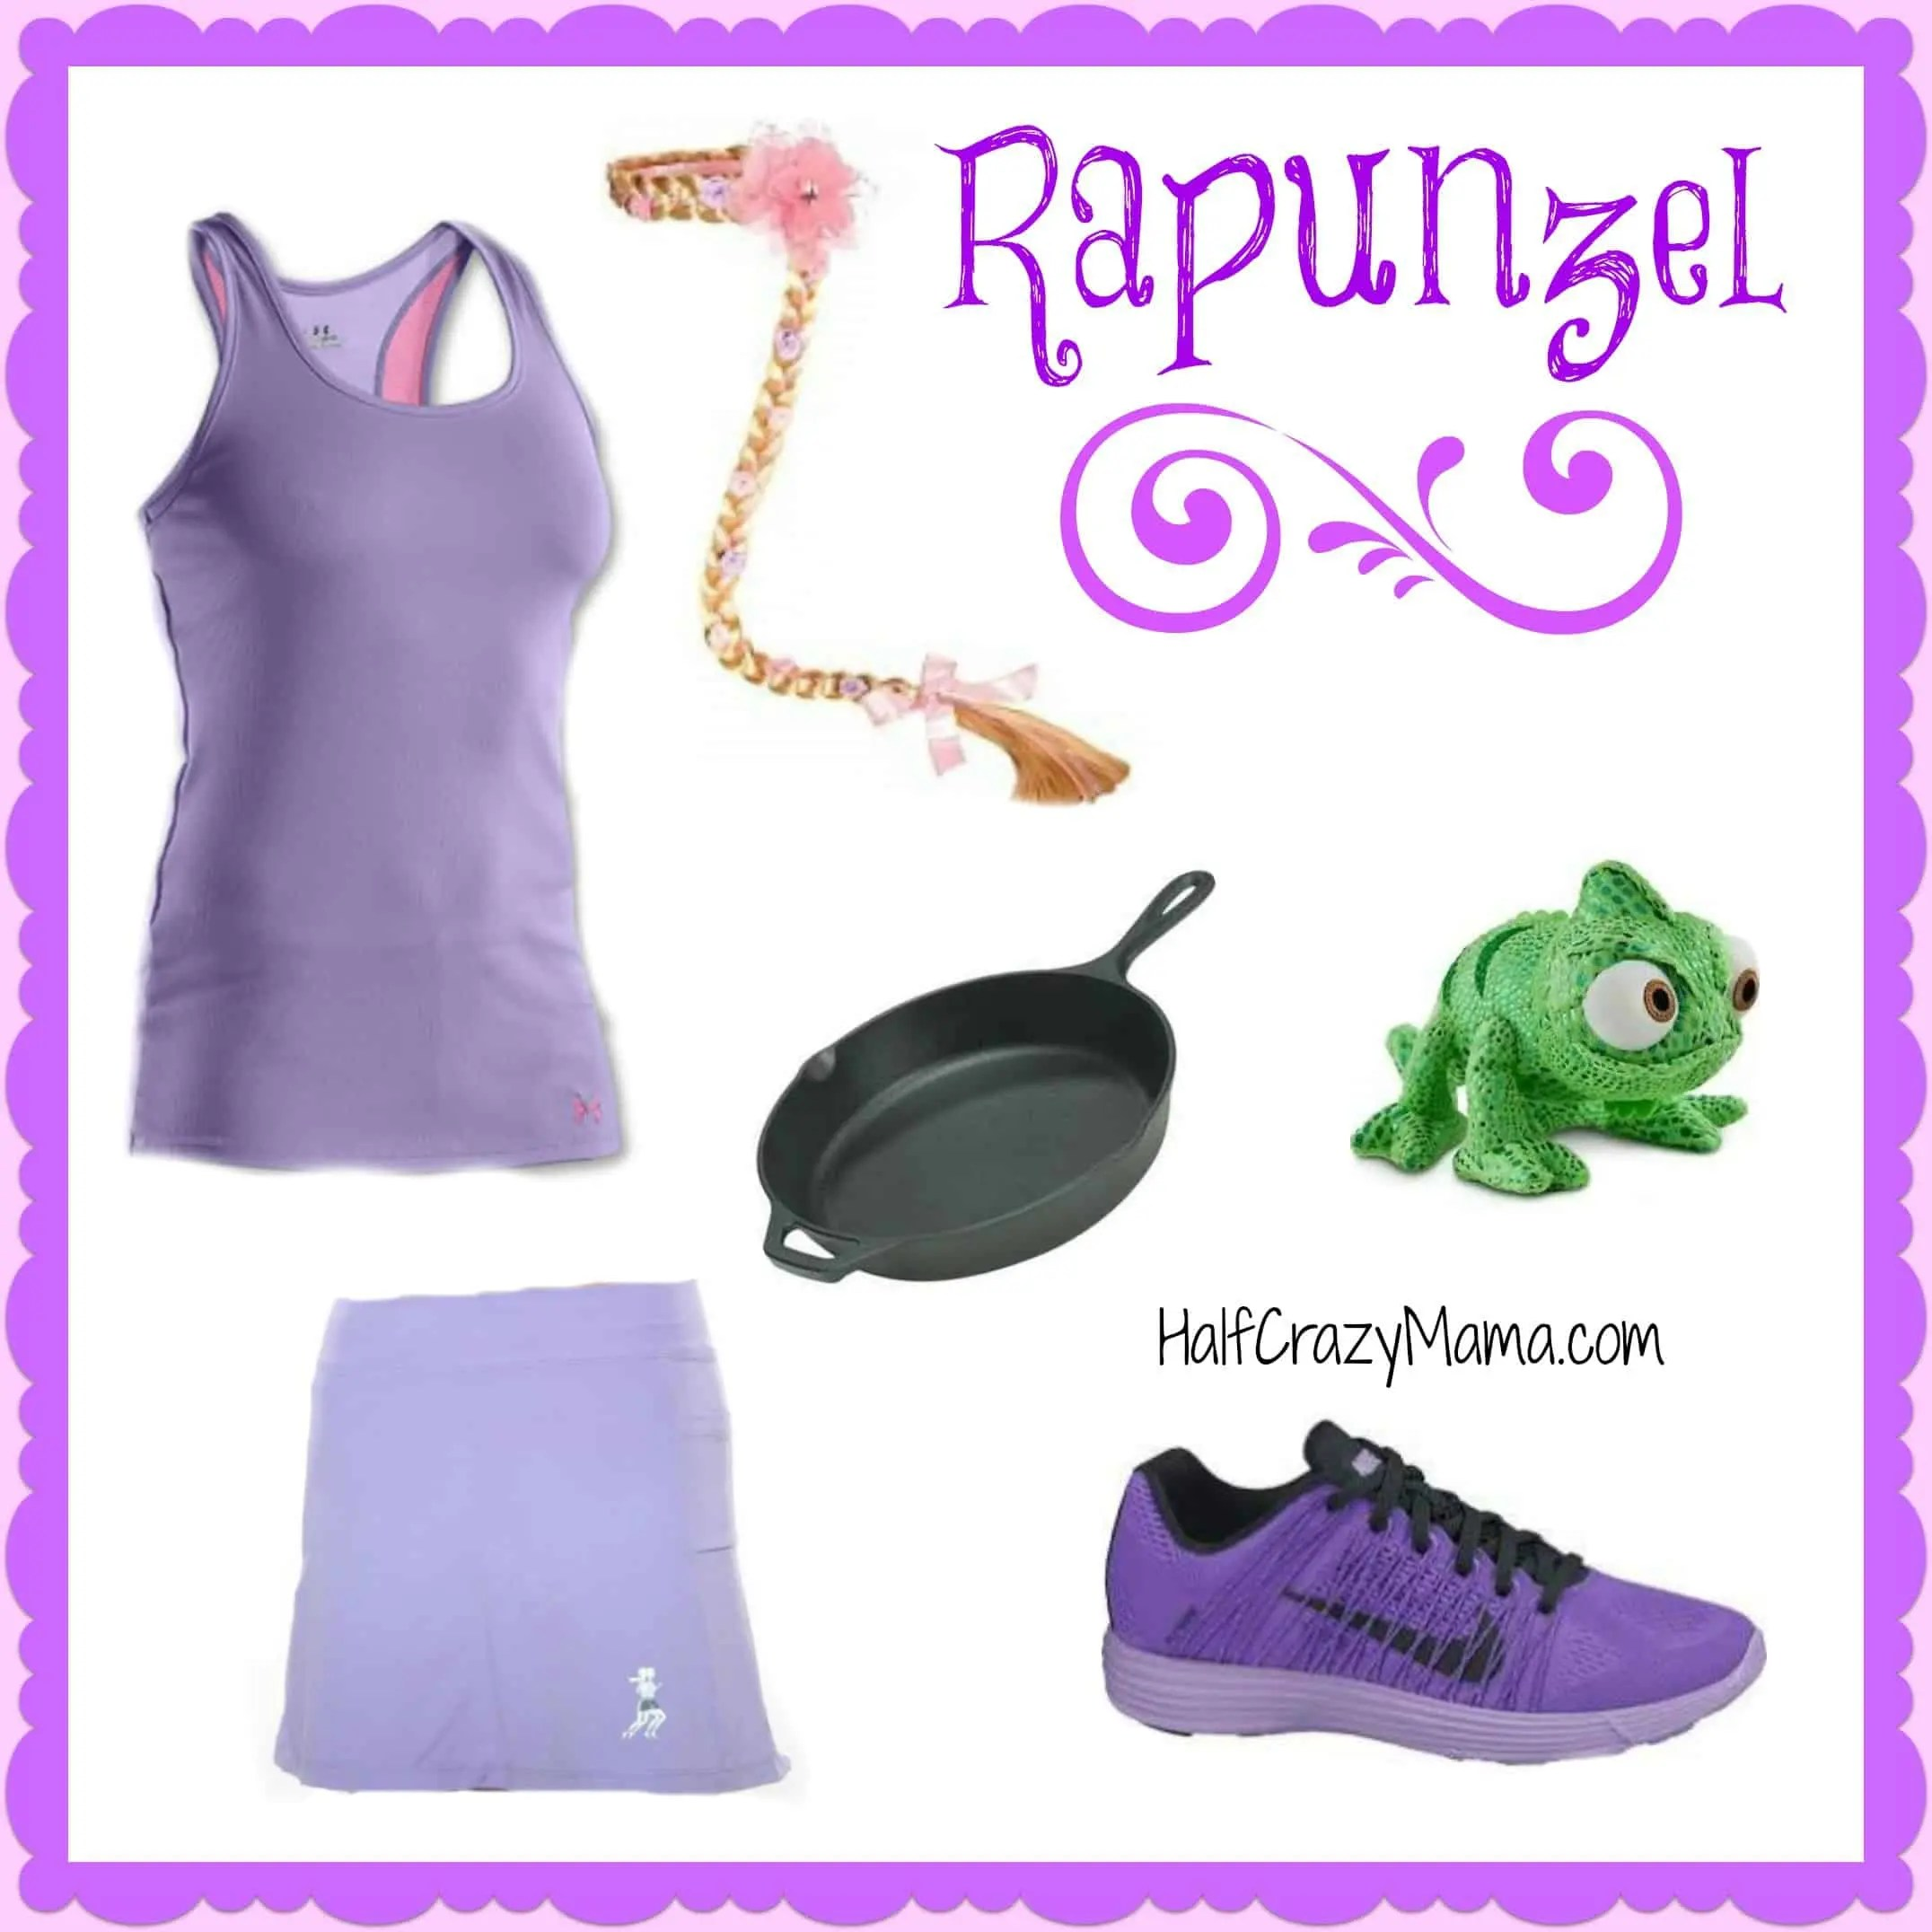 Rapunzel run costume